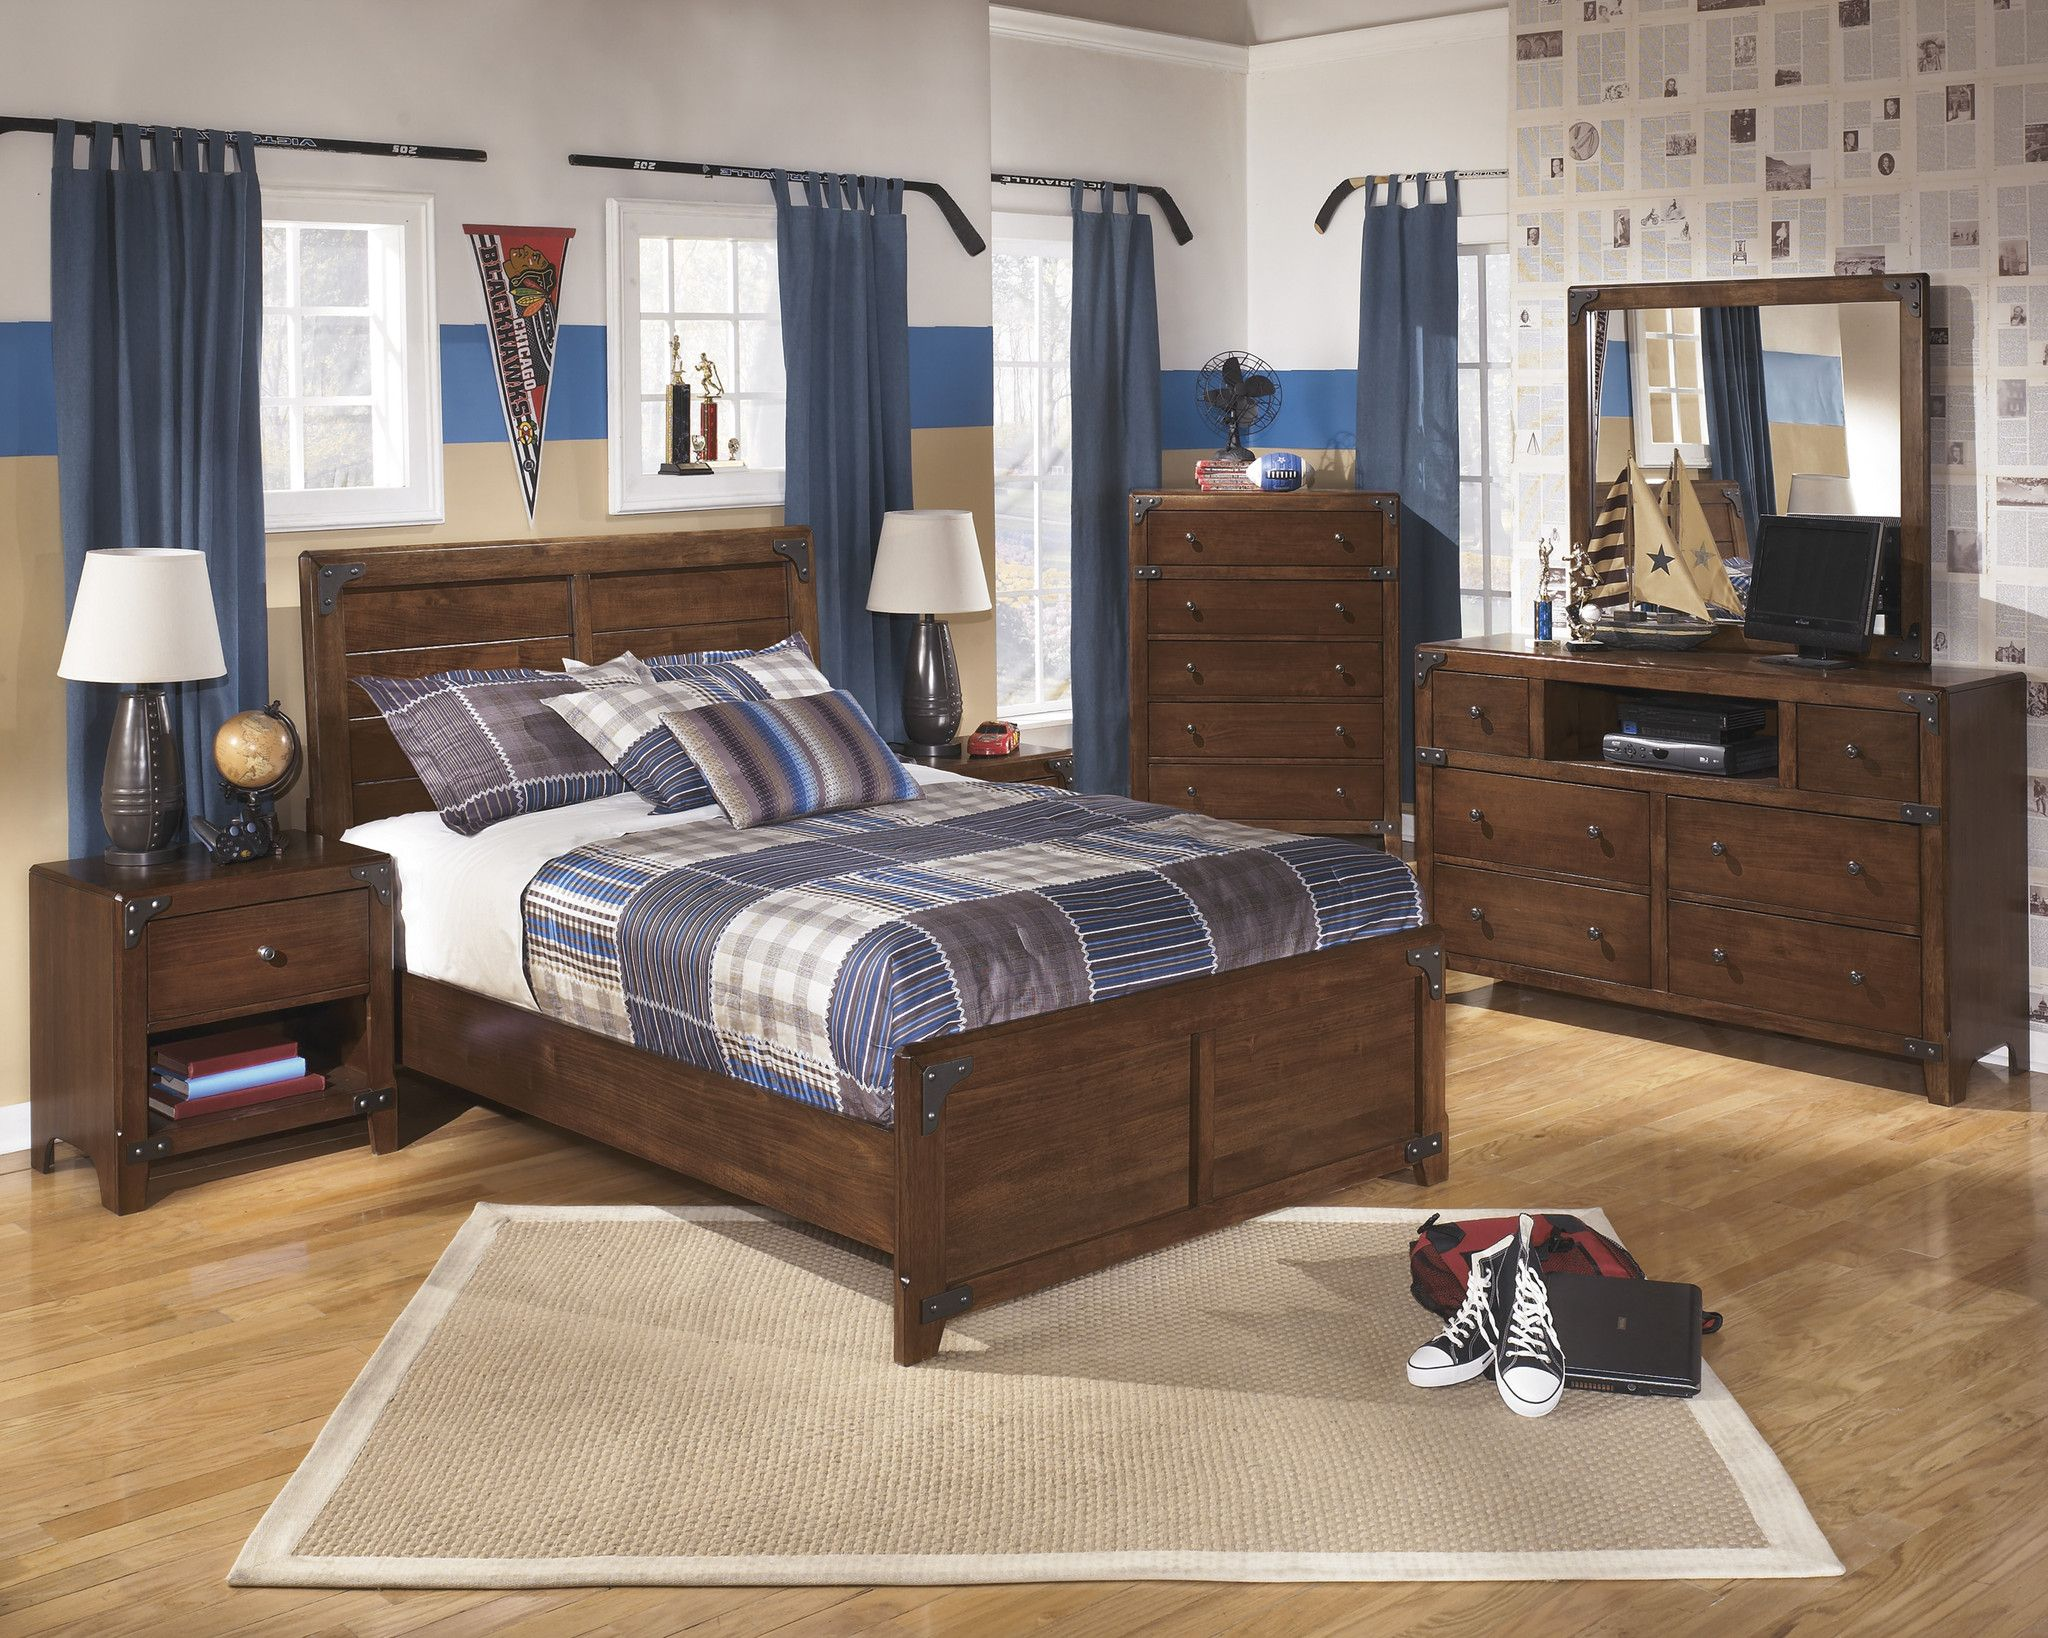 Delburne 5pc Kids Full Bedroom Set – Outfit My Home